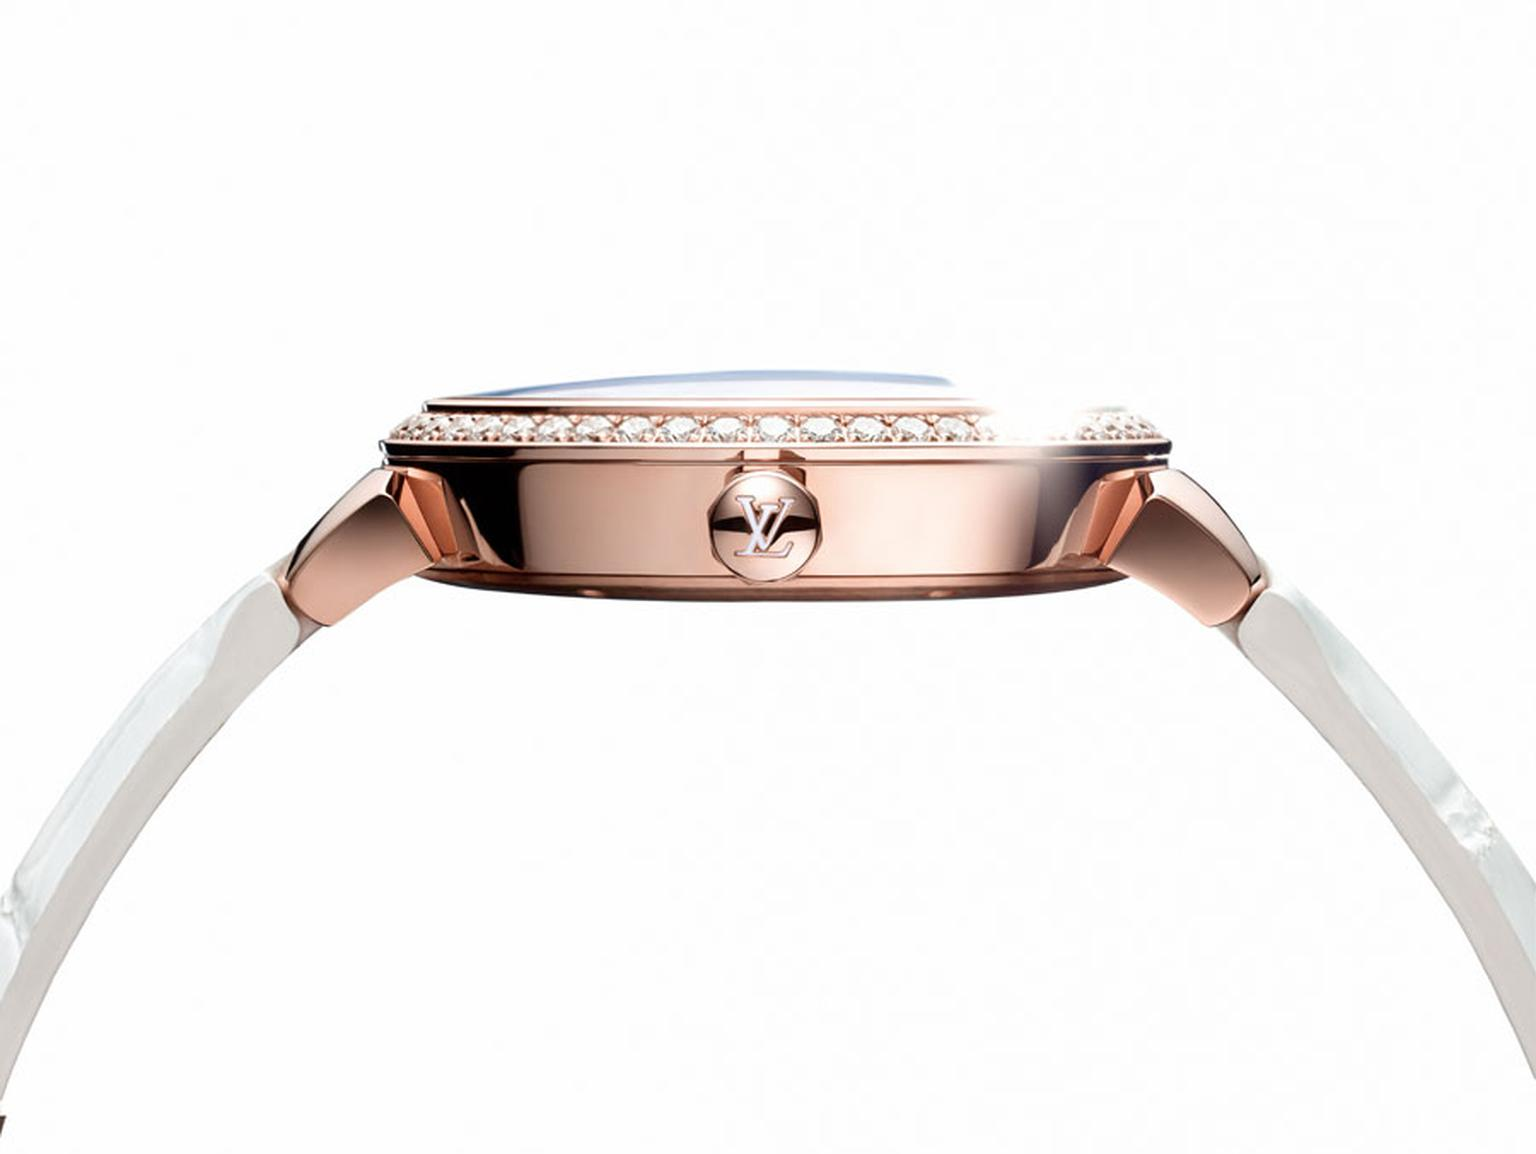 A profile view of the Louis Vuitton Tambour watch in rose gold with diamonds showing its re-worked case shape. © LOUIS VUITTON. Auteur: MITCHELL FEINBERG.